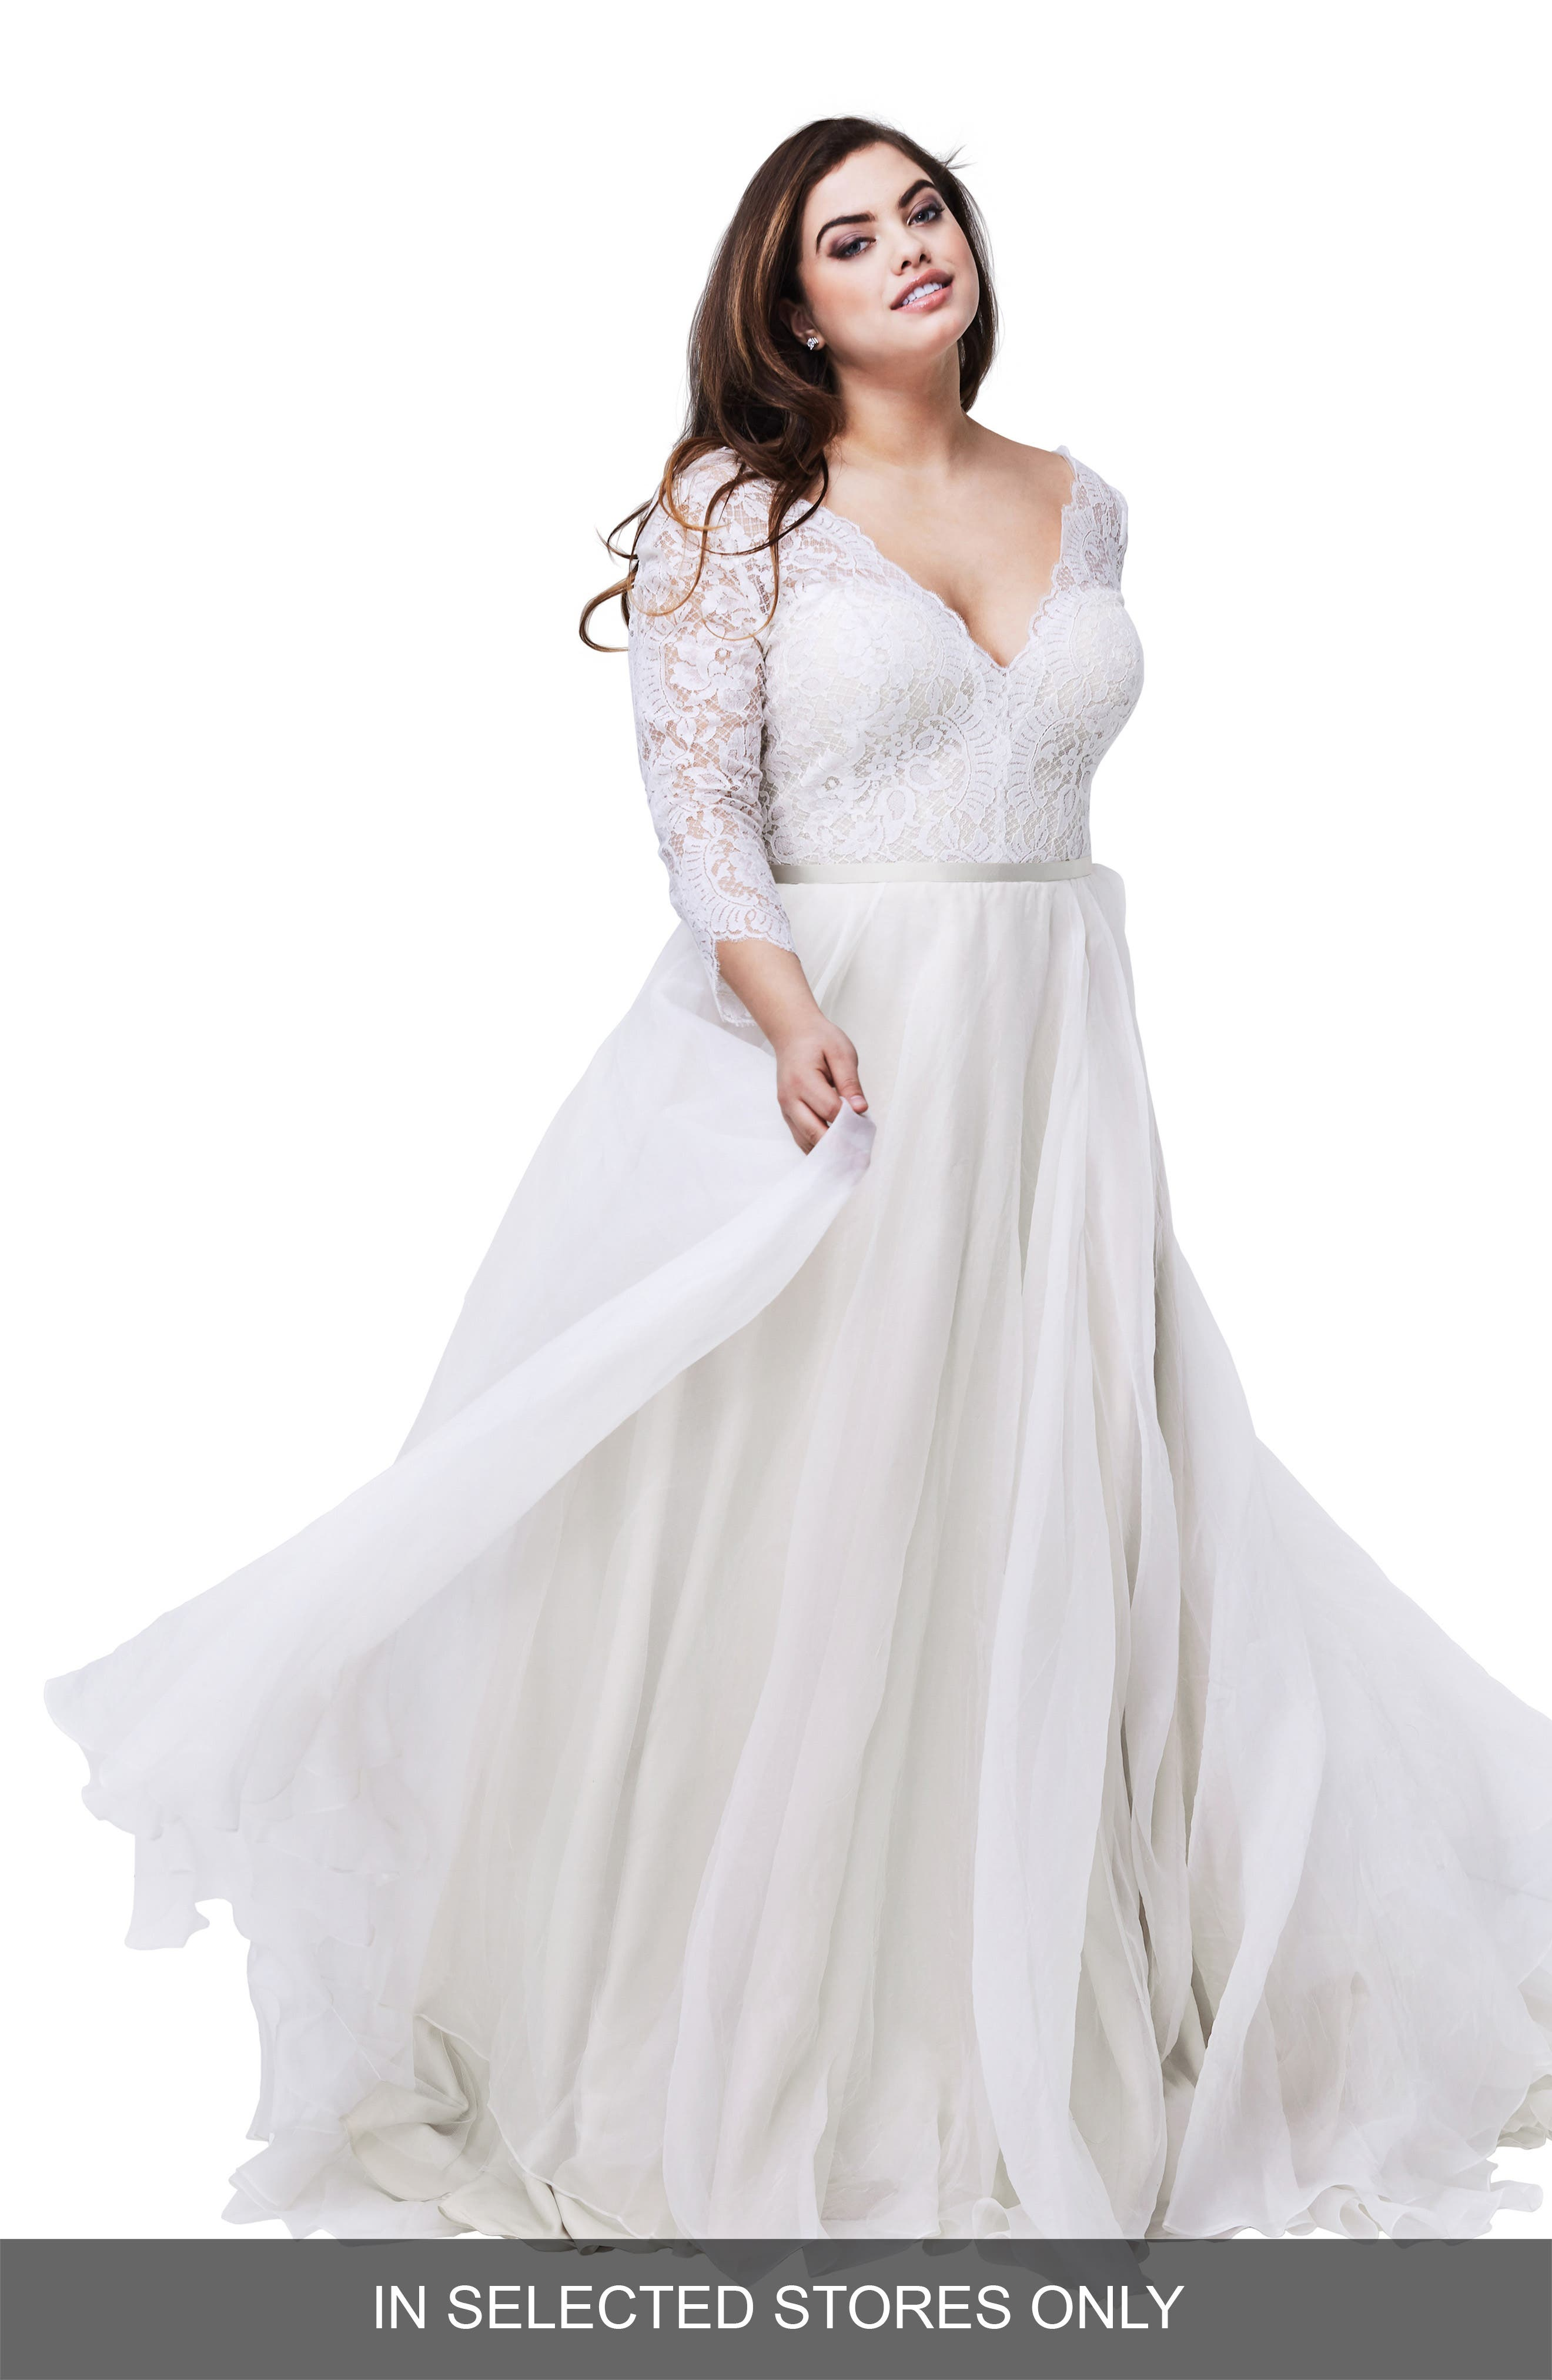 Shiloh Lace & Silk Organza A-Line Gown,                         Main,                         color, IVORY